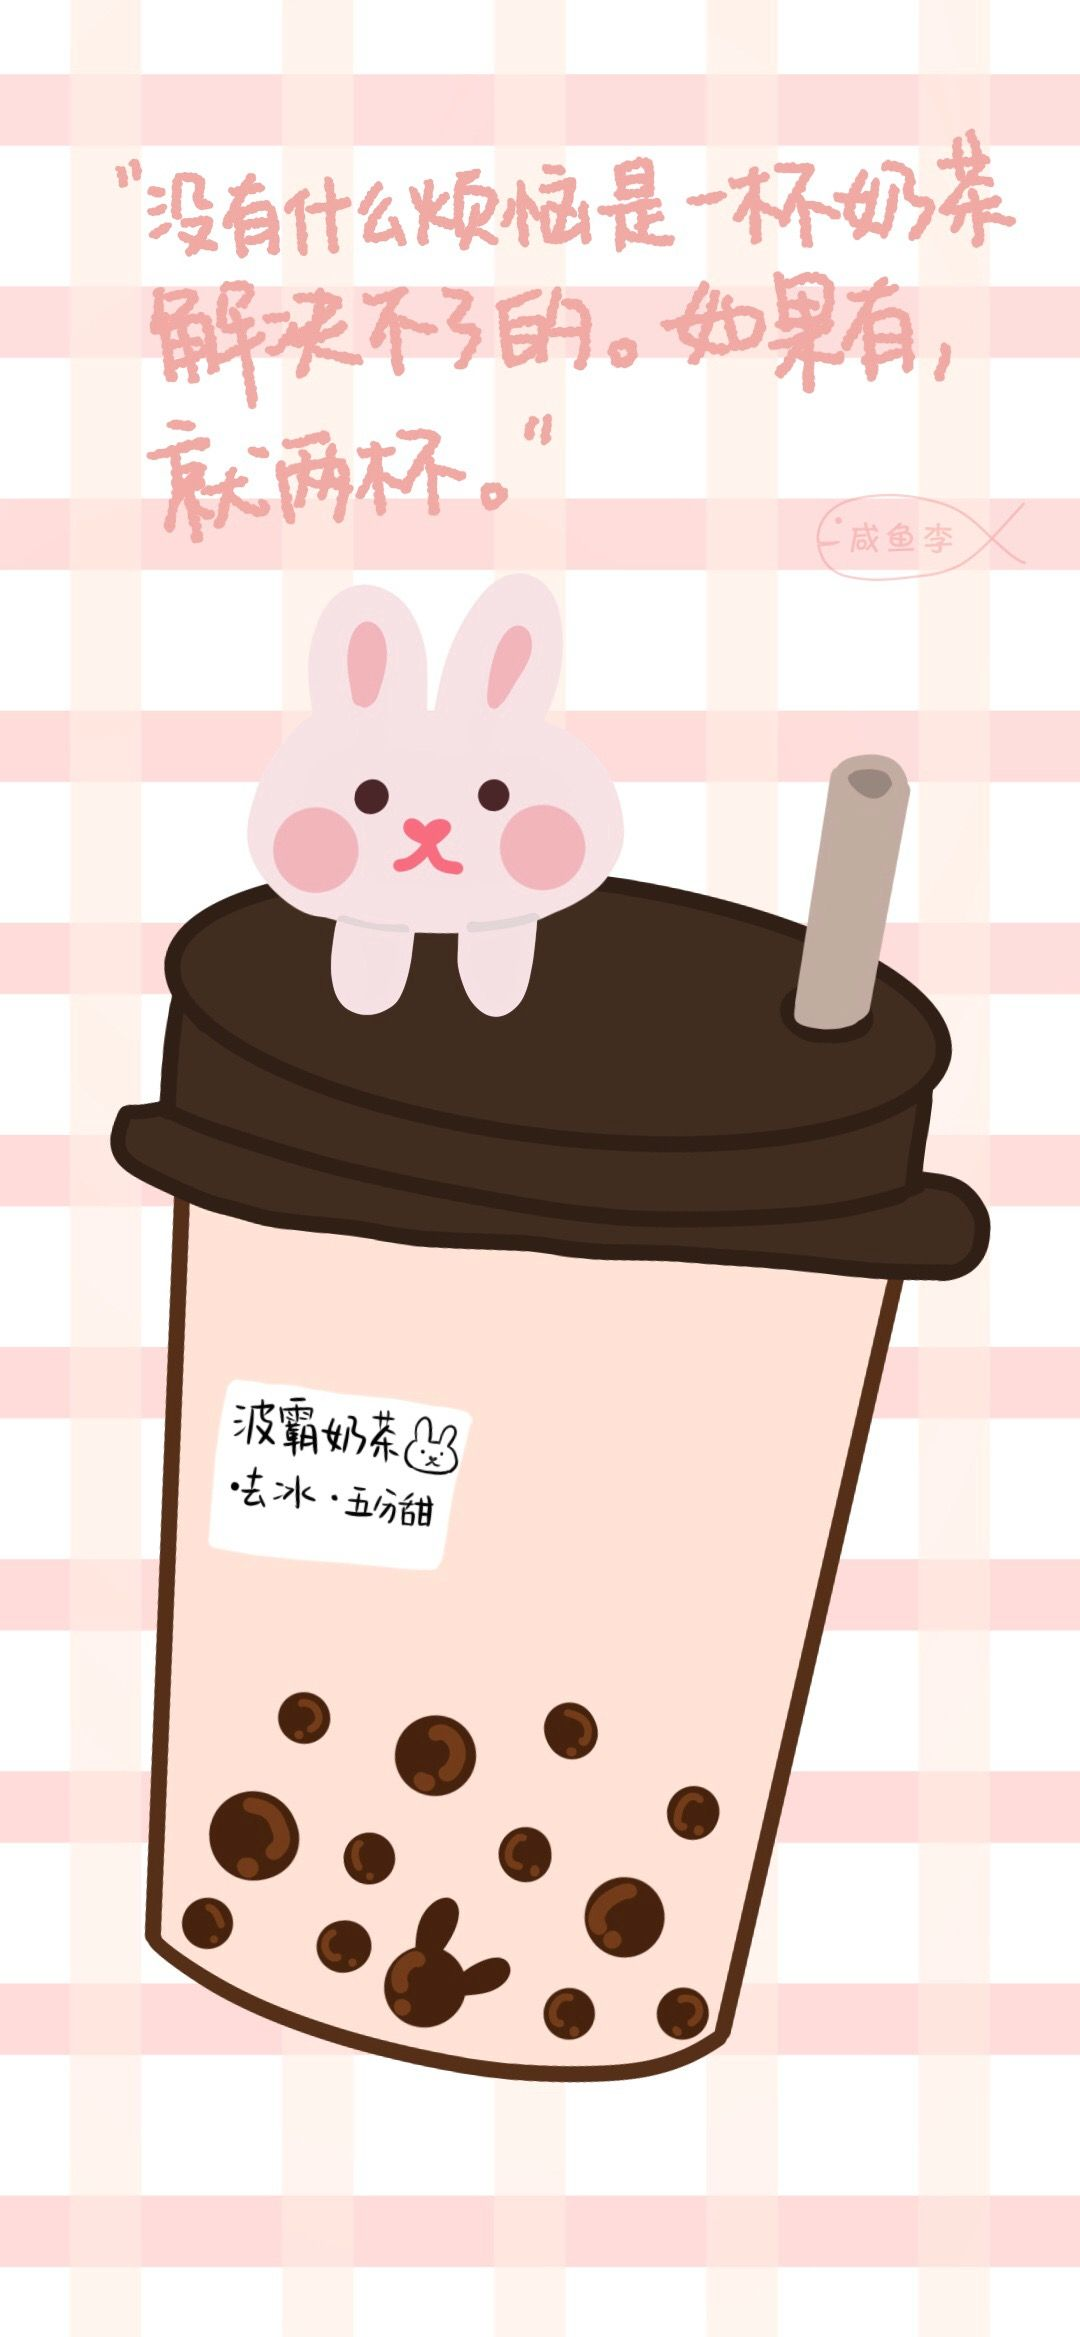 Aesthetic Boba Tea Wallpaper